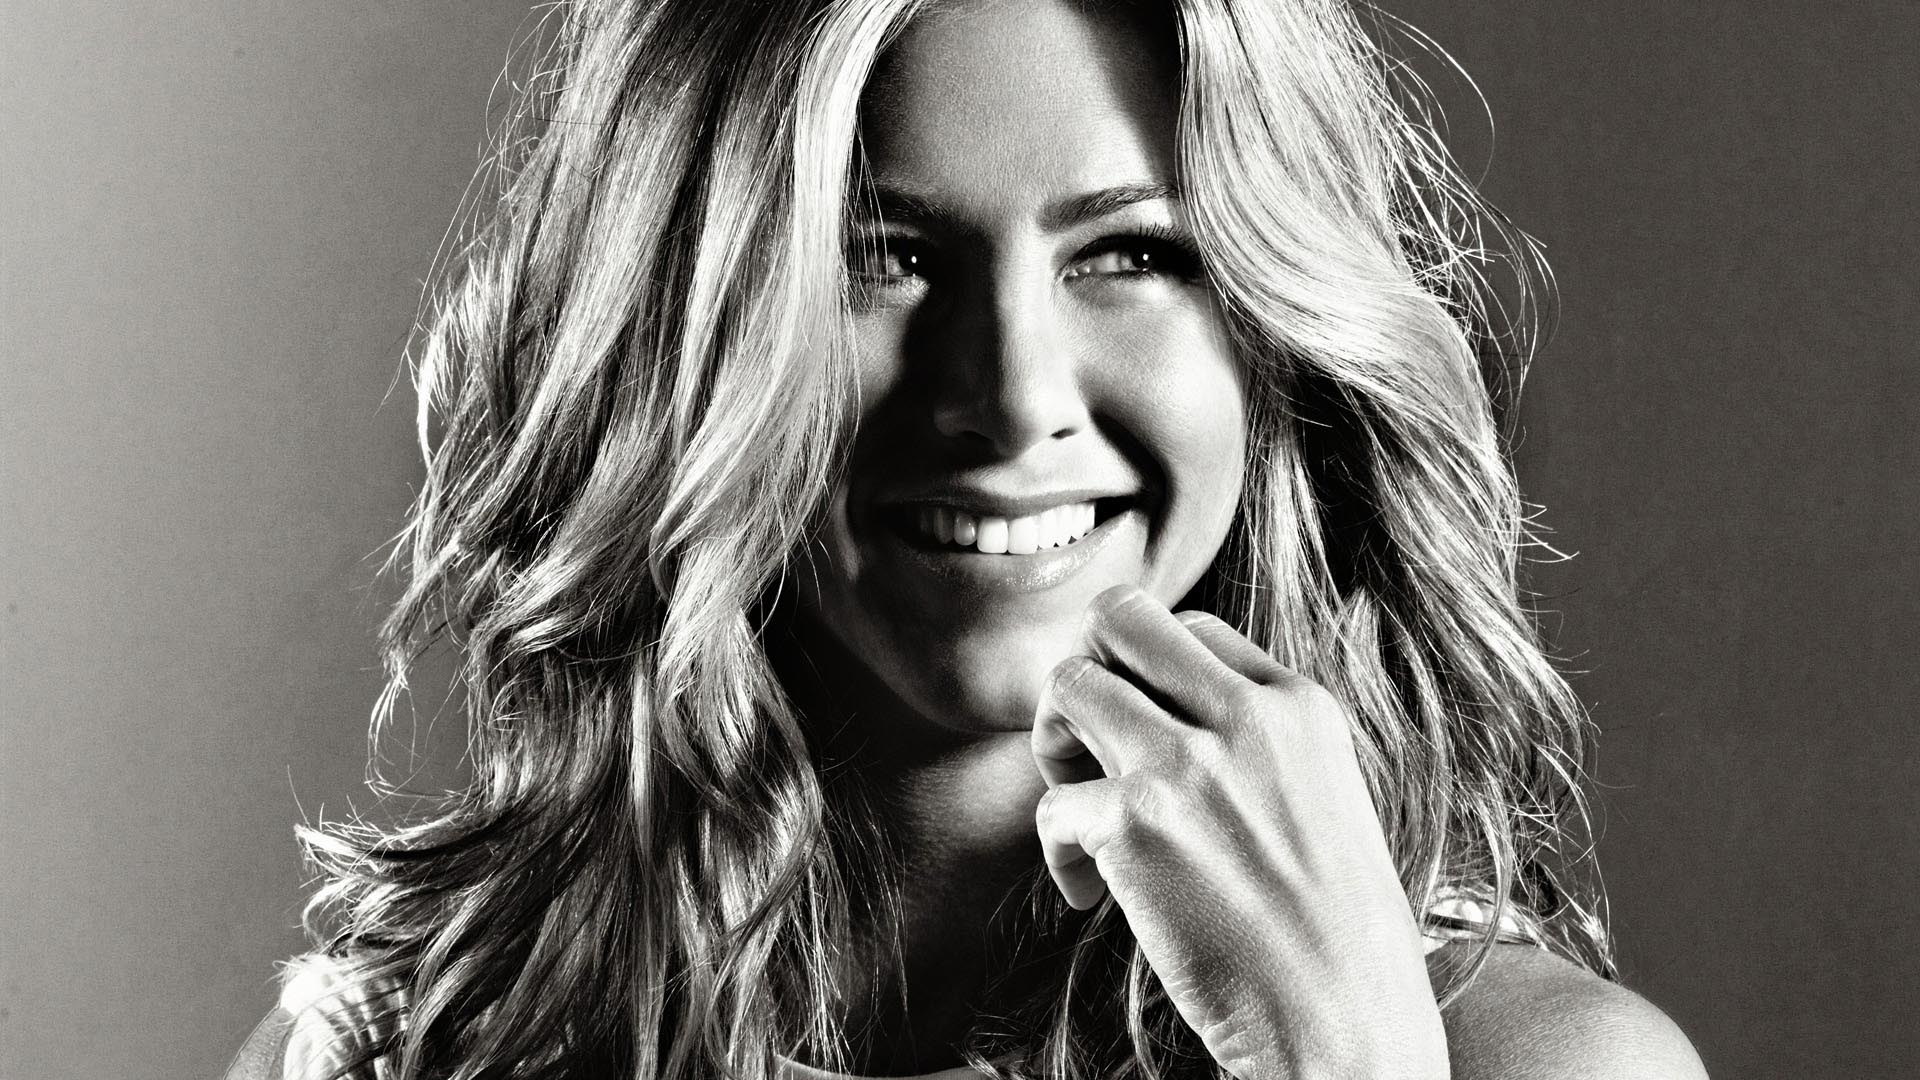 Jennifer Aniston: 37 Jennifer Aniston Facts That Will Surprise You